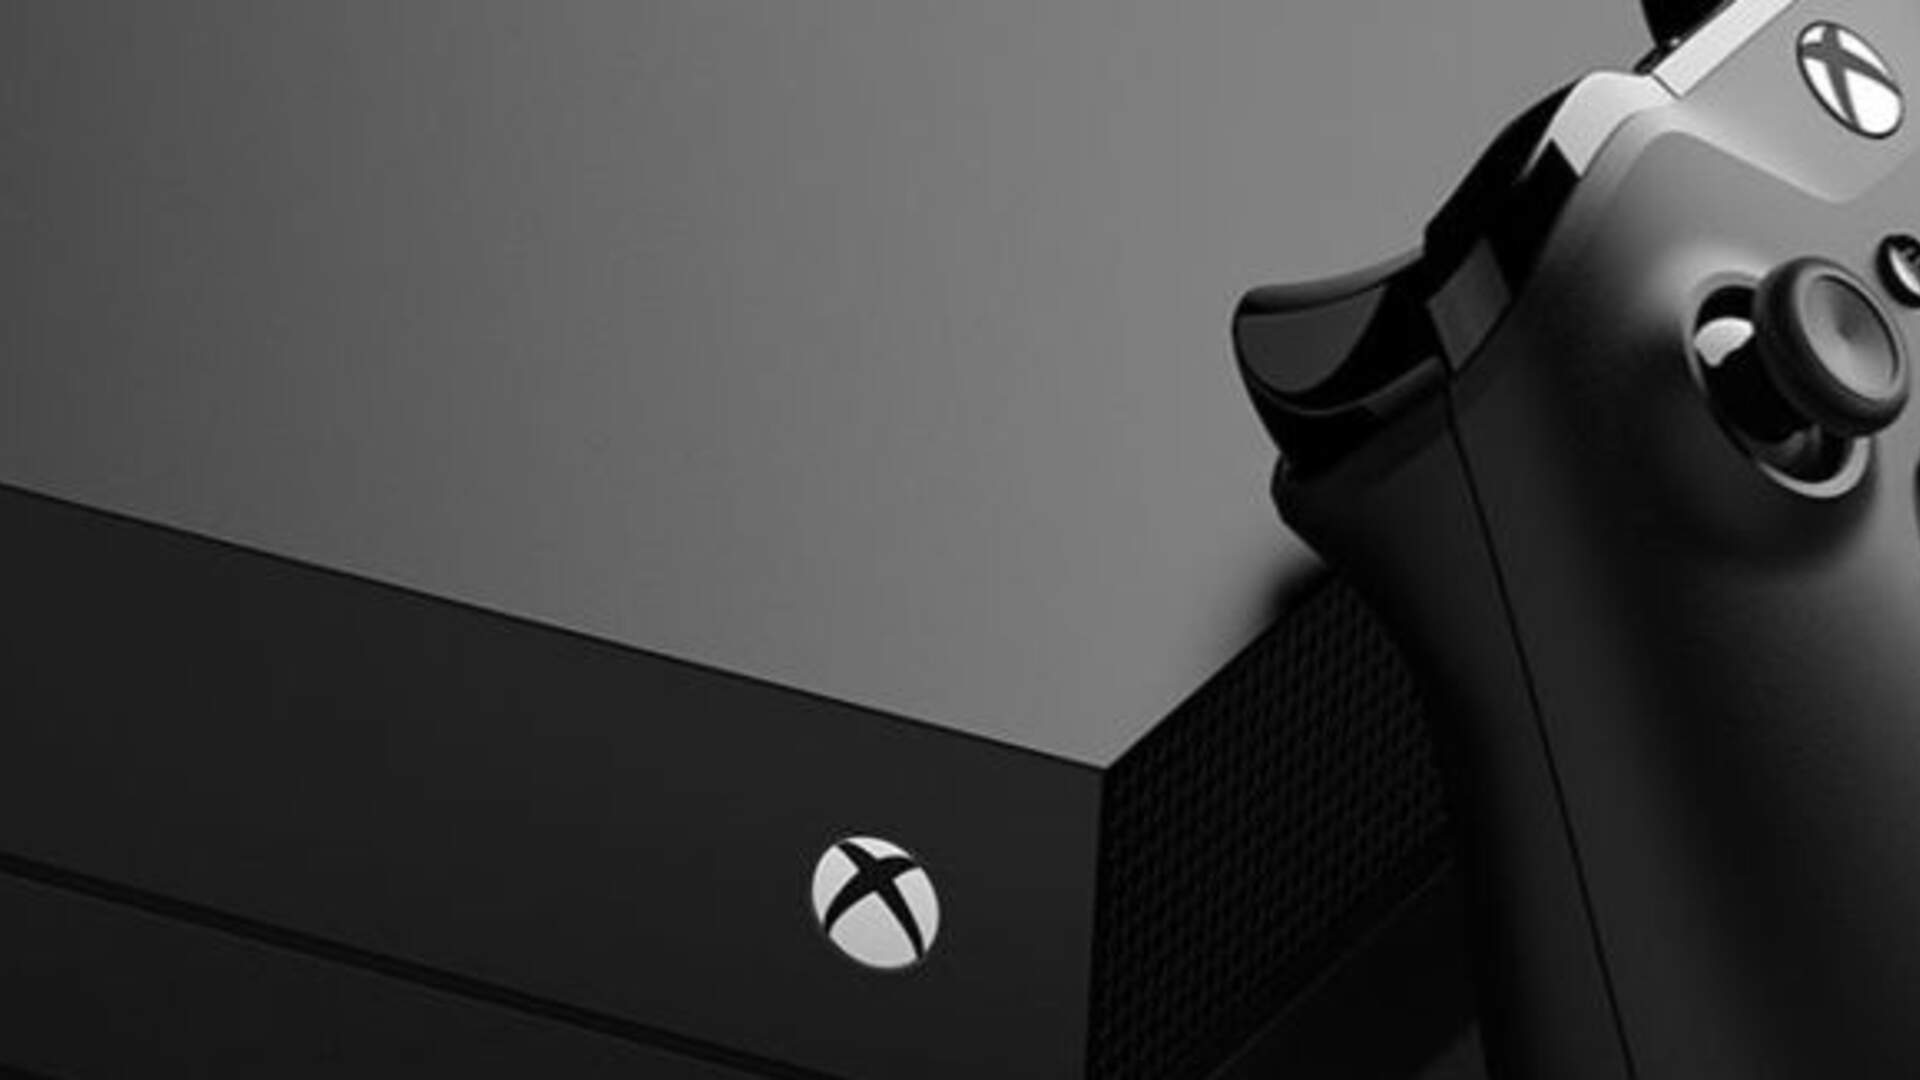 Counterpoint: The Xbox One X is Right to Prioritize Power, Even if it's at the Expense of Affordability